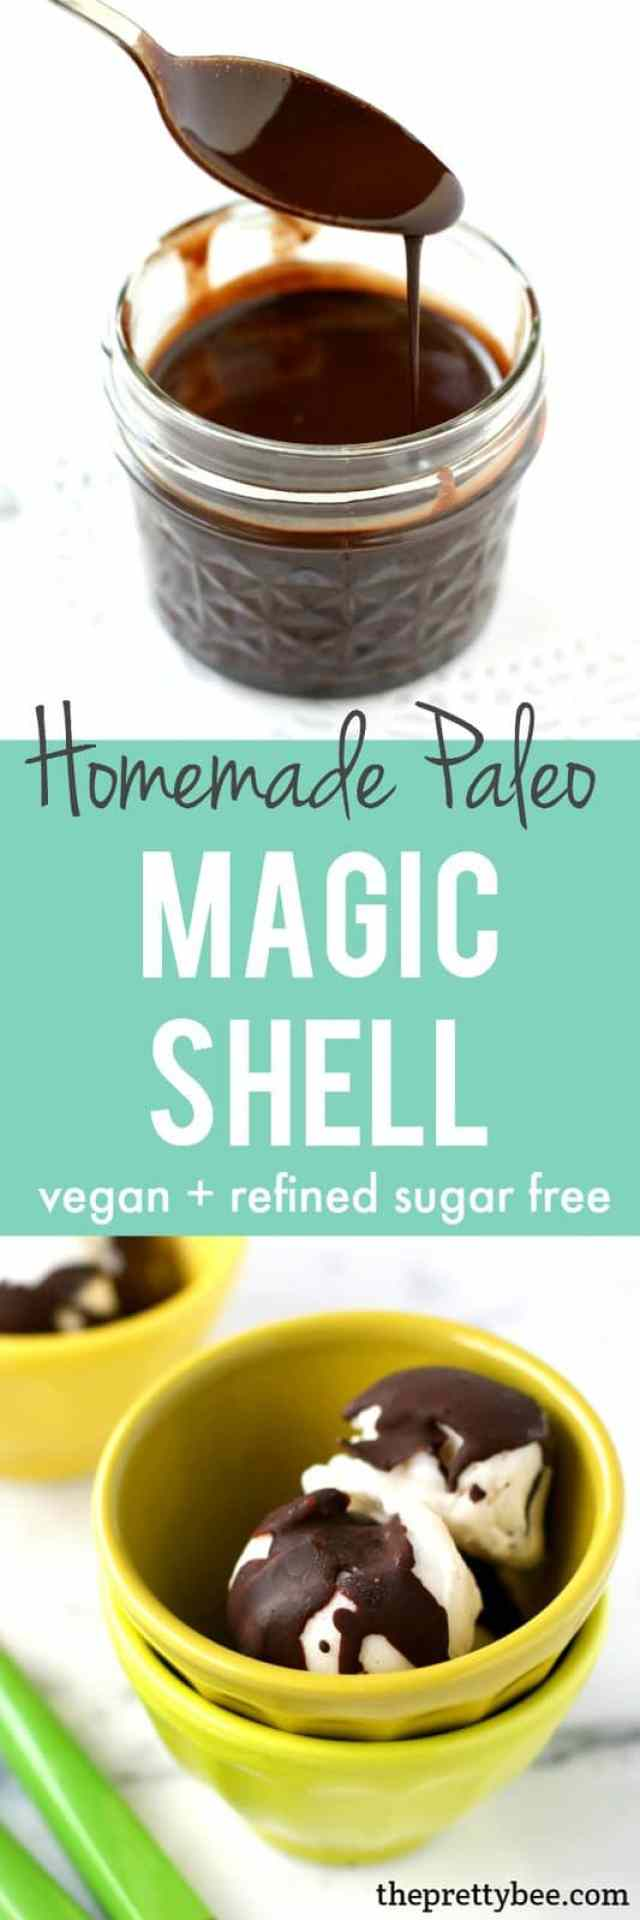 Simple, delicious homemade magic shell topping - this recipe is Paleo, refined sugar free, and vegan!